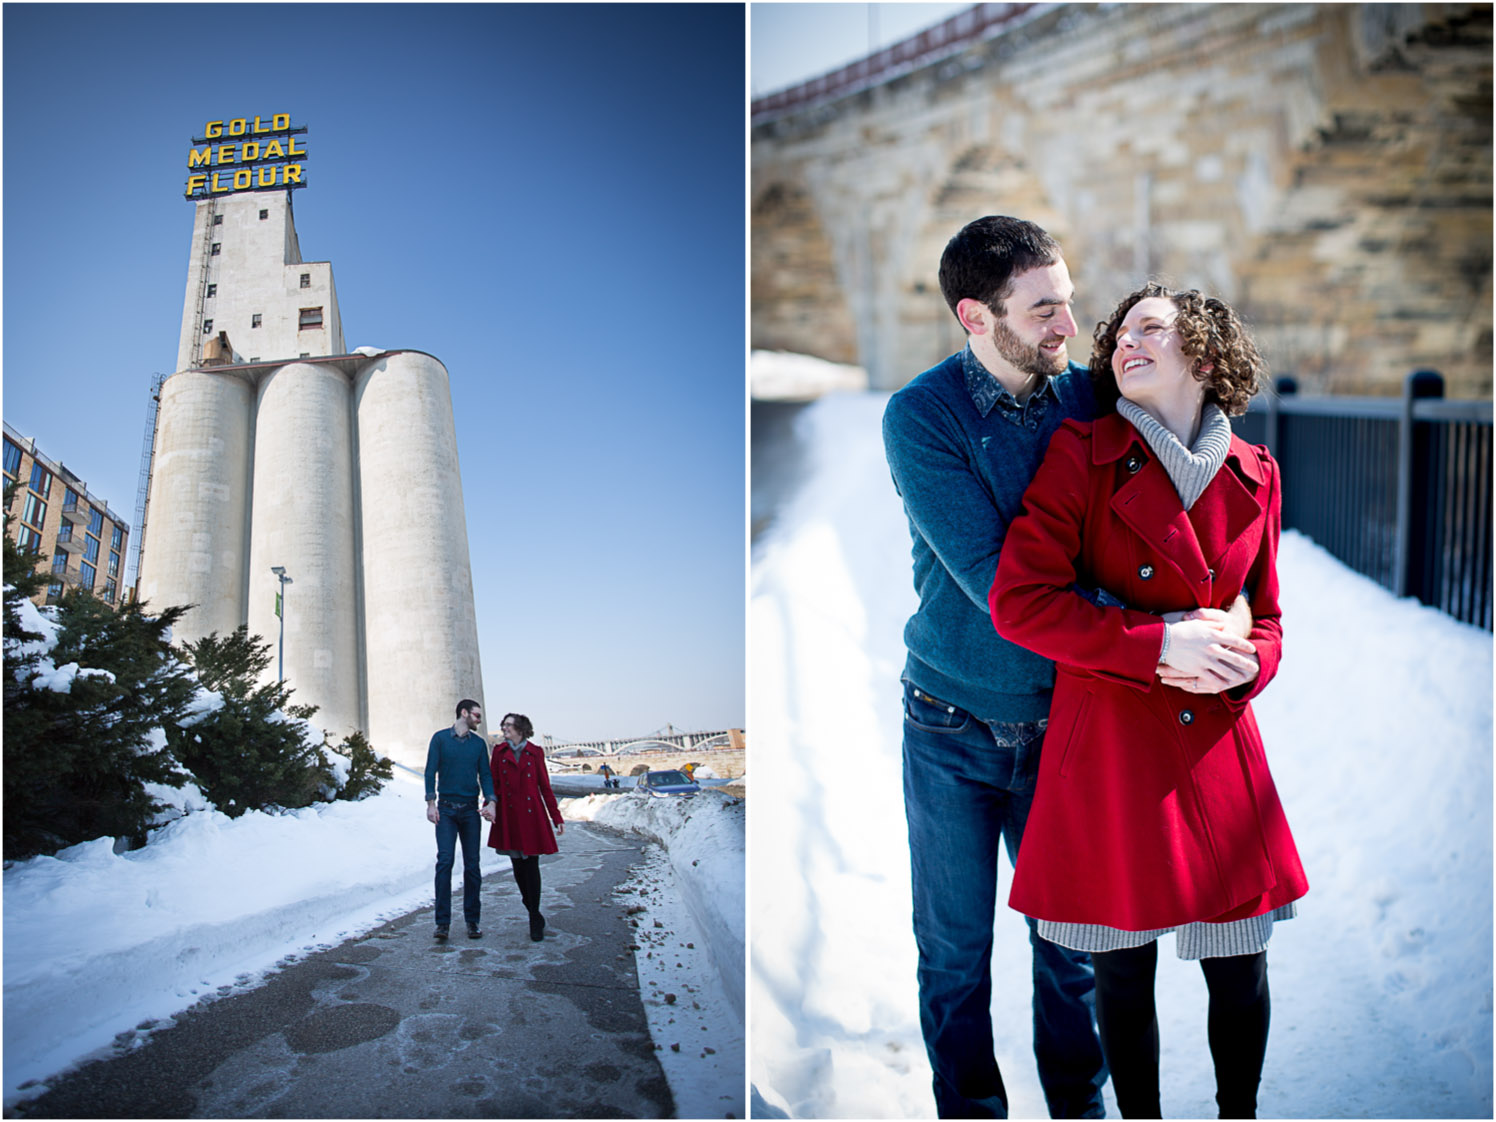 09-mill-city-ruins-park-gold-medal-flour--minneapolis-minnesota-winter-engagement-session-cafe-mahonen-photography.jpg